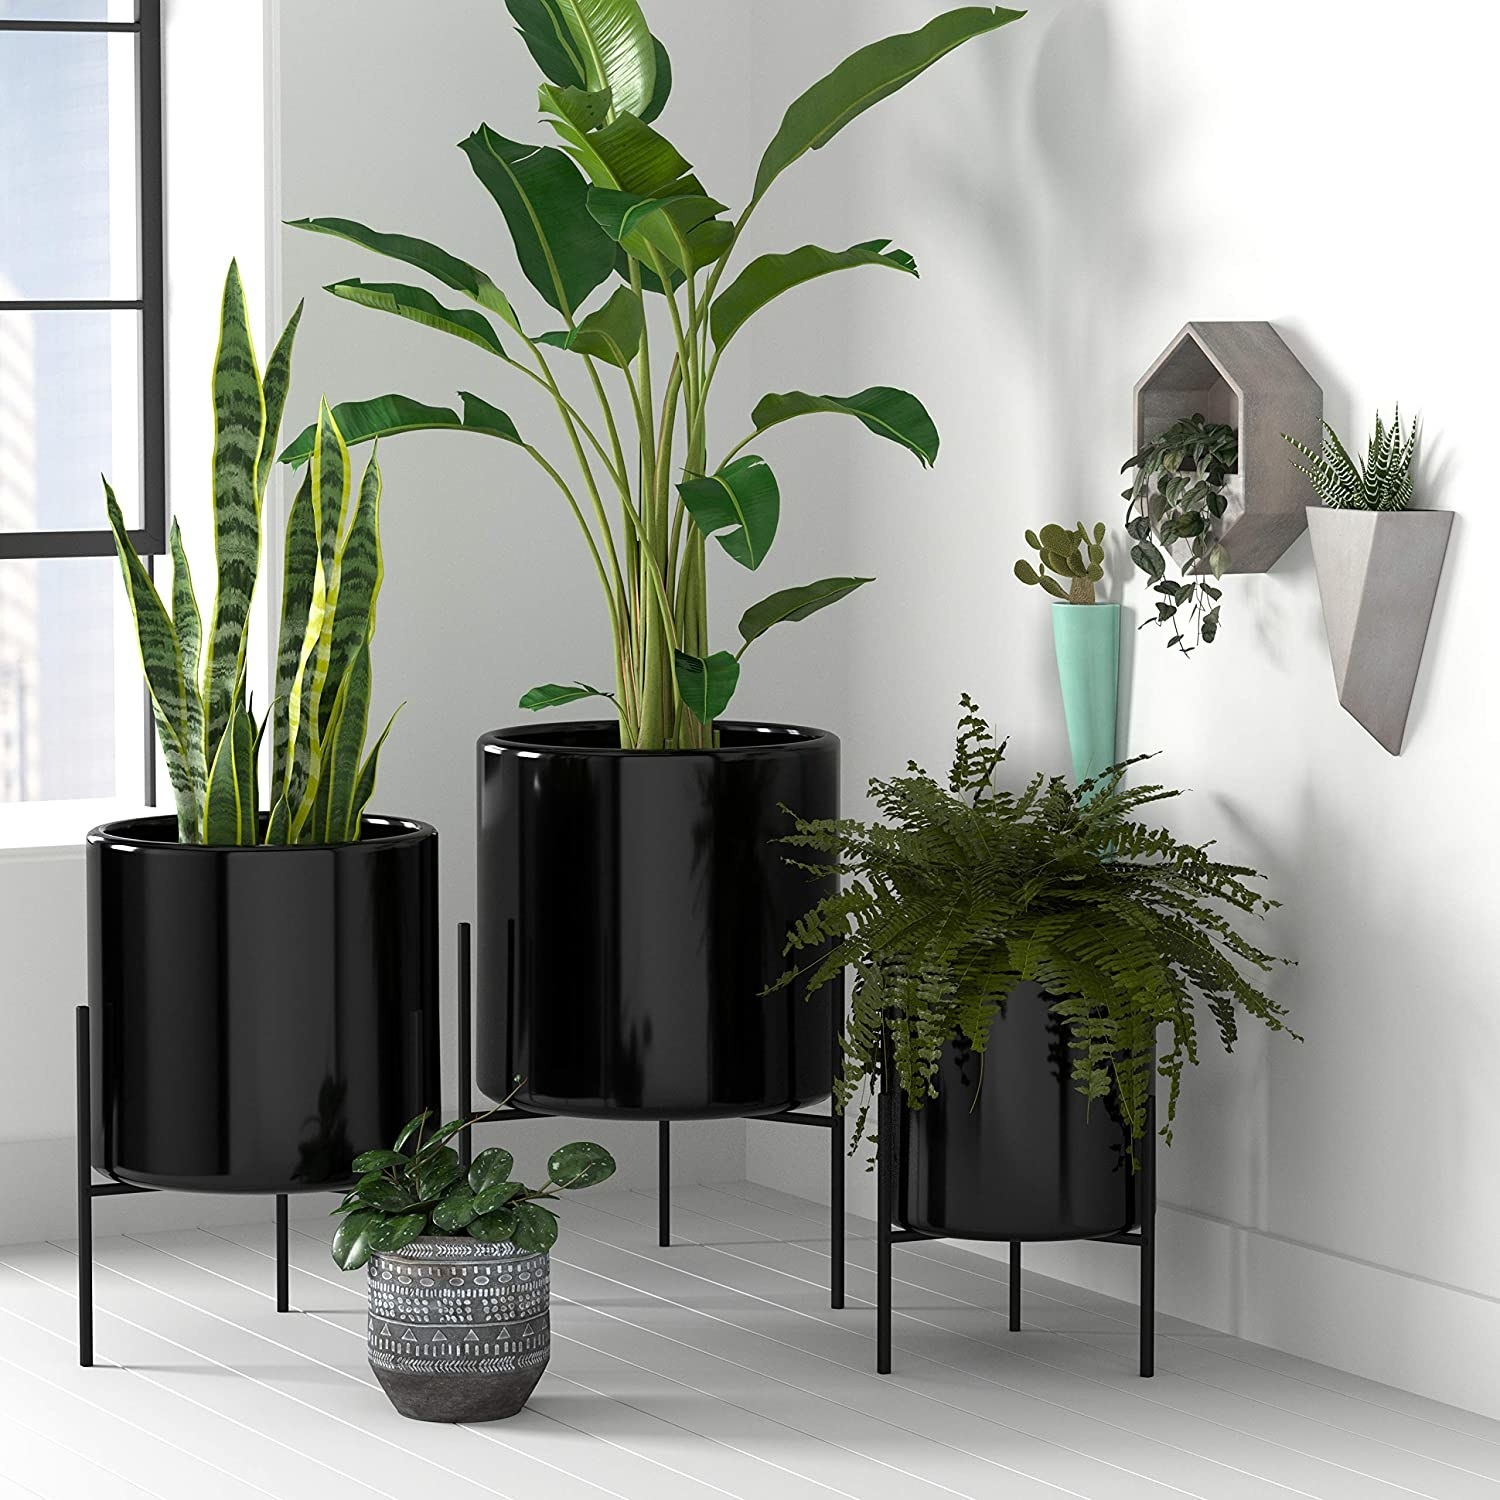 Three different sized black planters on black stands